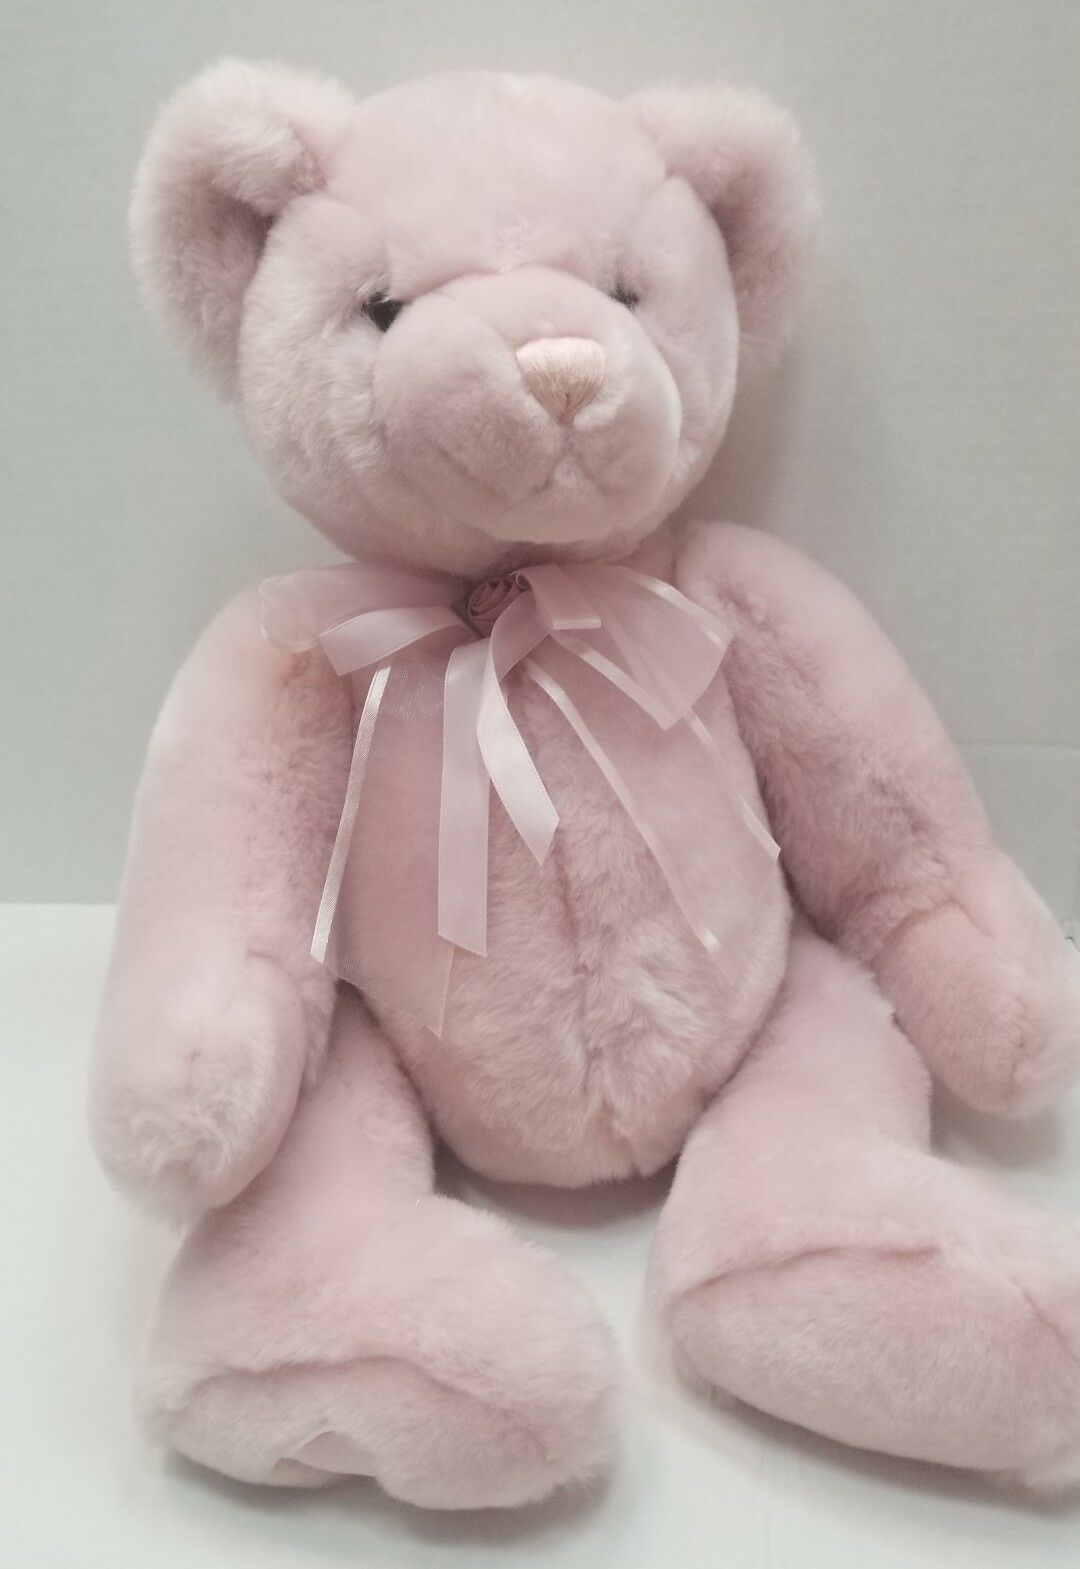 COMMONWEALTH Soft Stuffed Animal TEDDY BEAR Plush/Toy Rosa 17